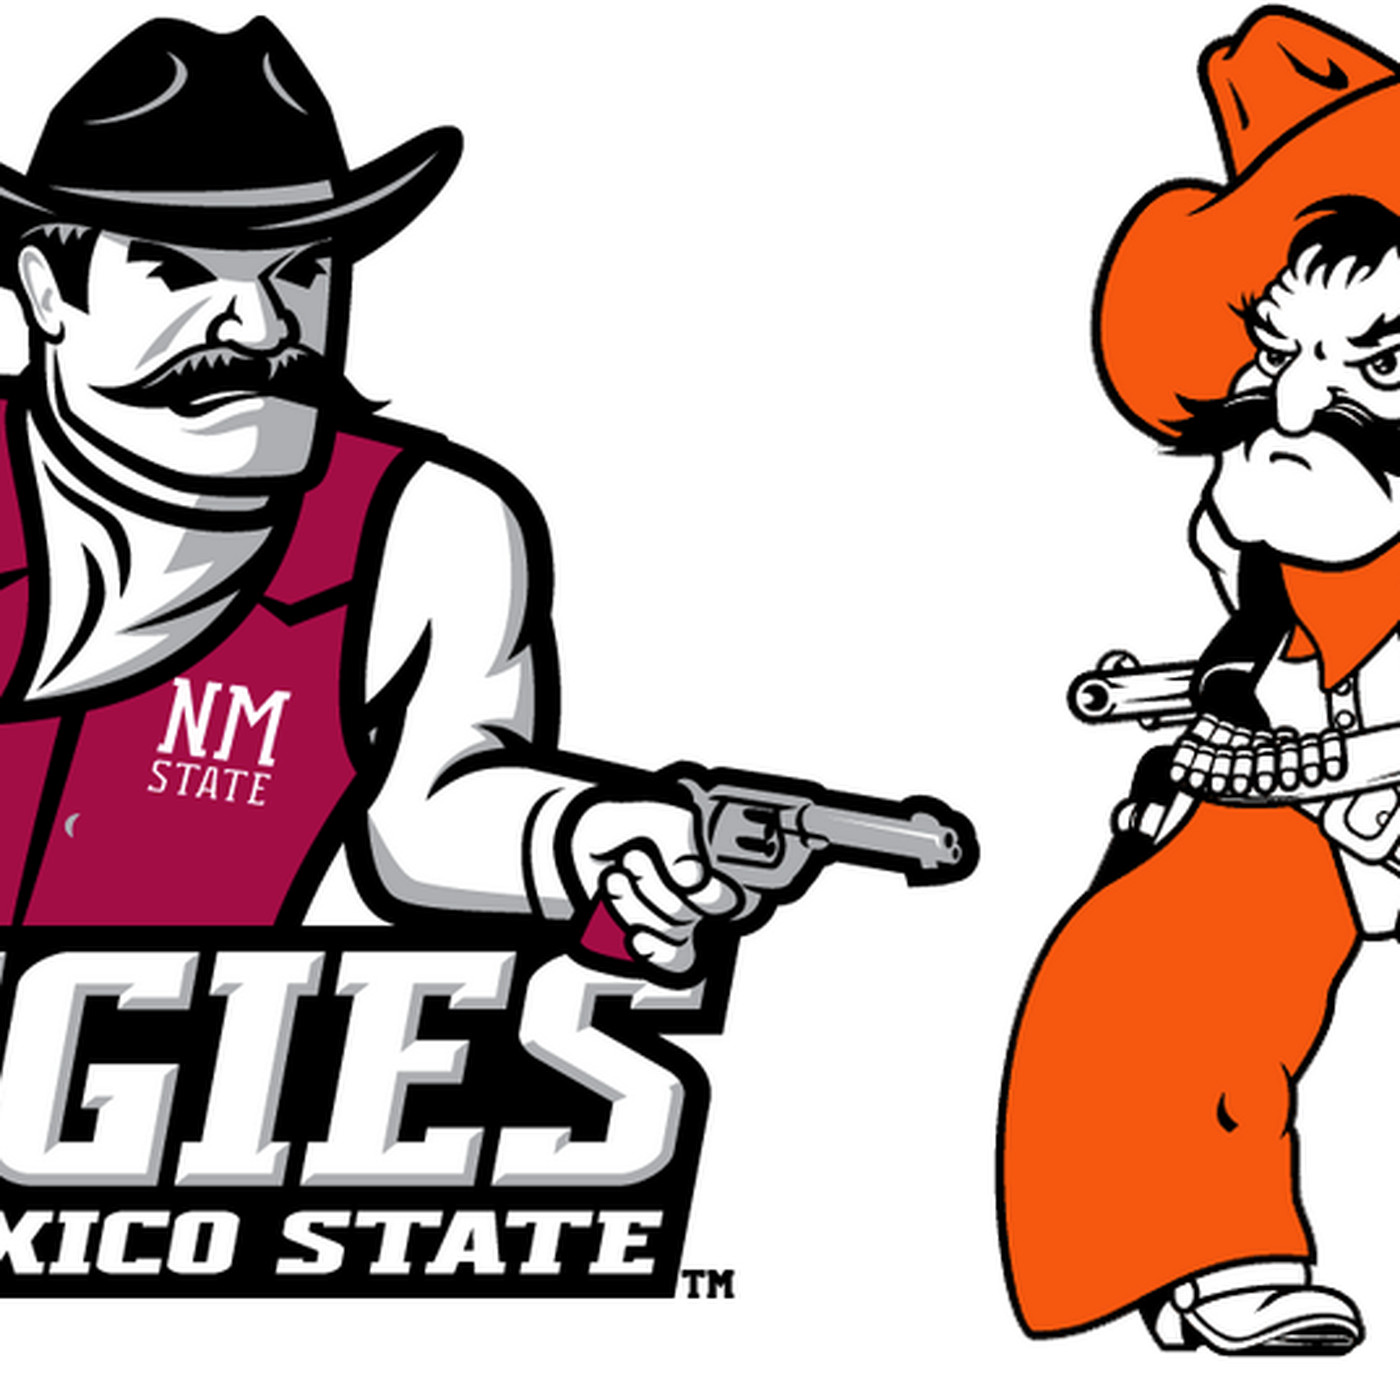 Oklahoma State Sues New Mexico State Over Confusingly Similar